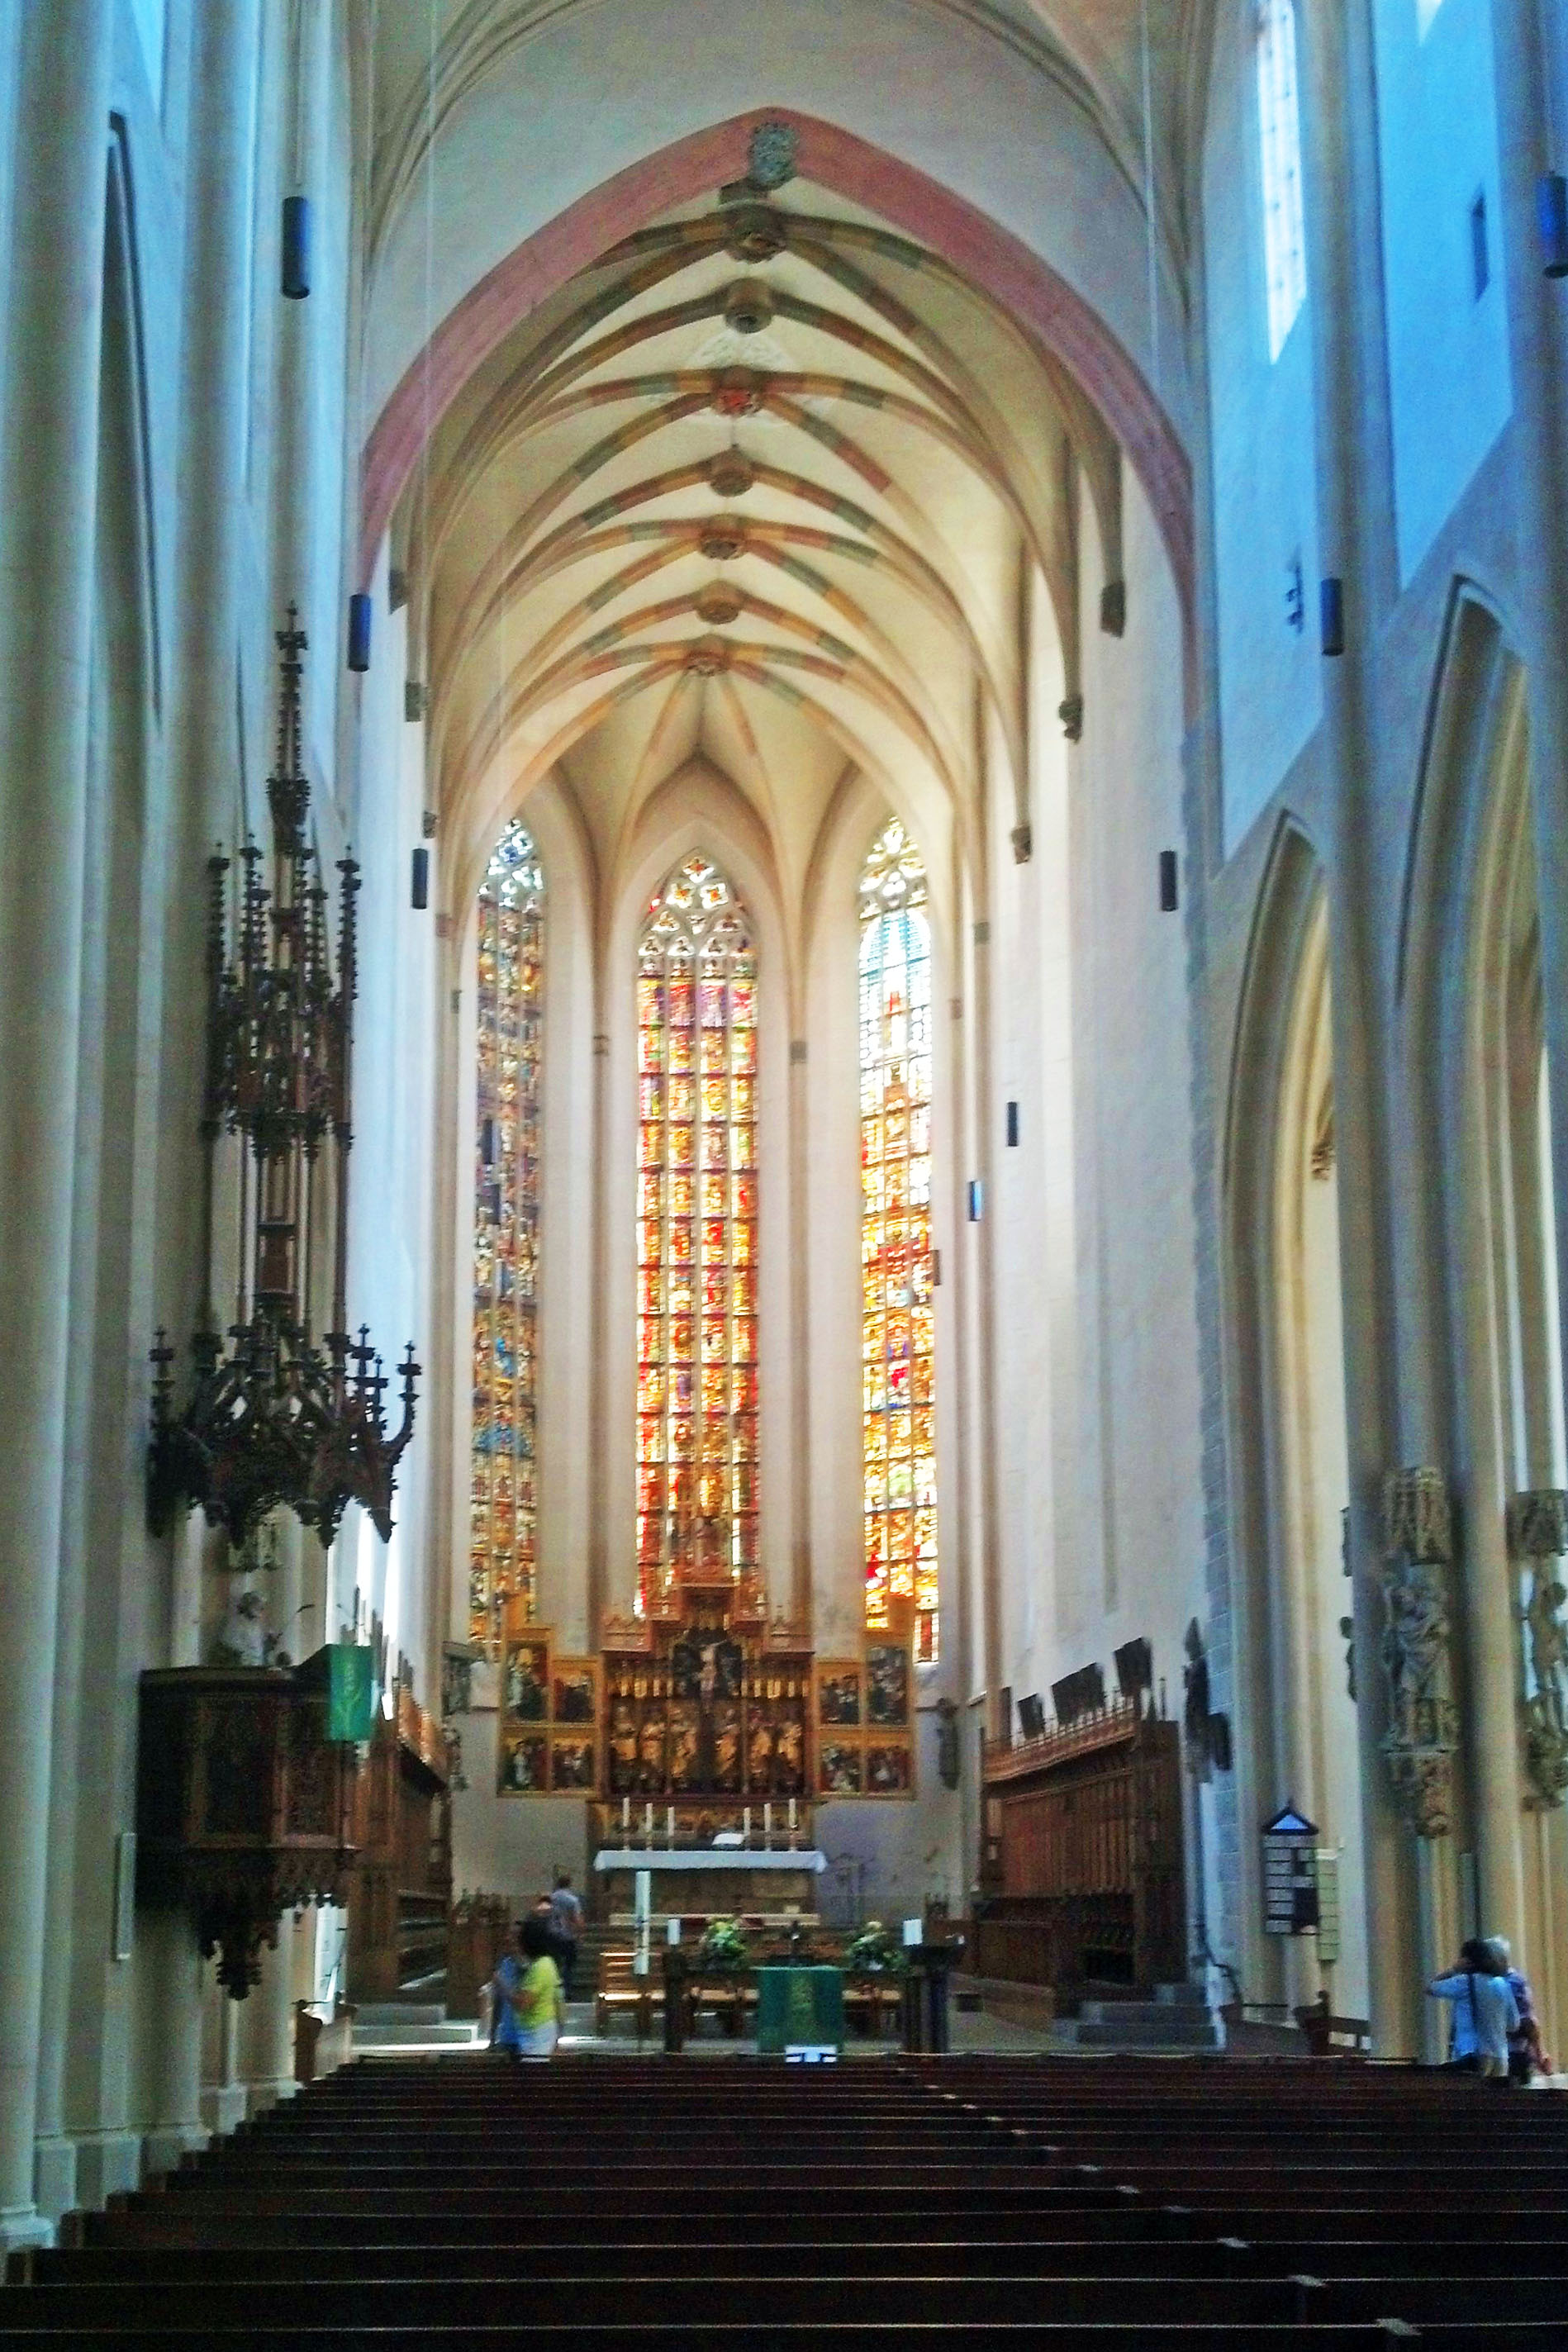 The high alter of St. Jacob's Church.